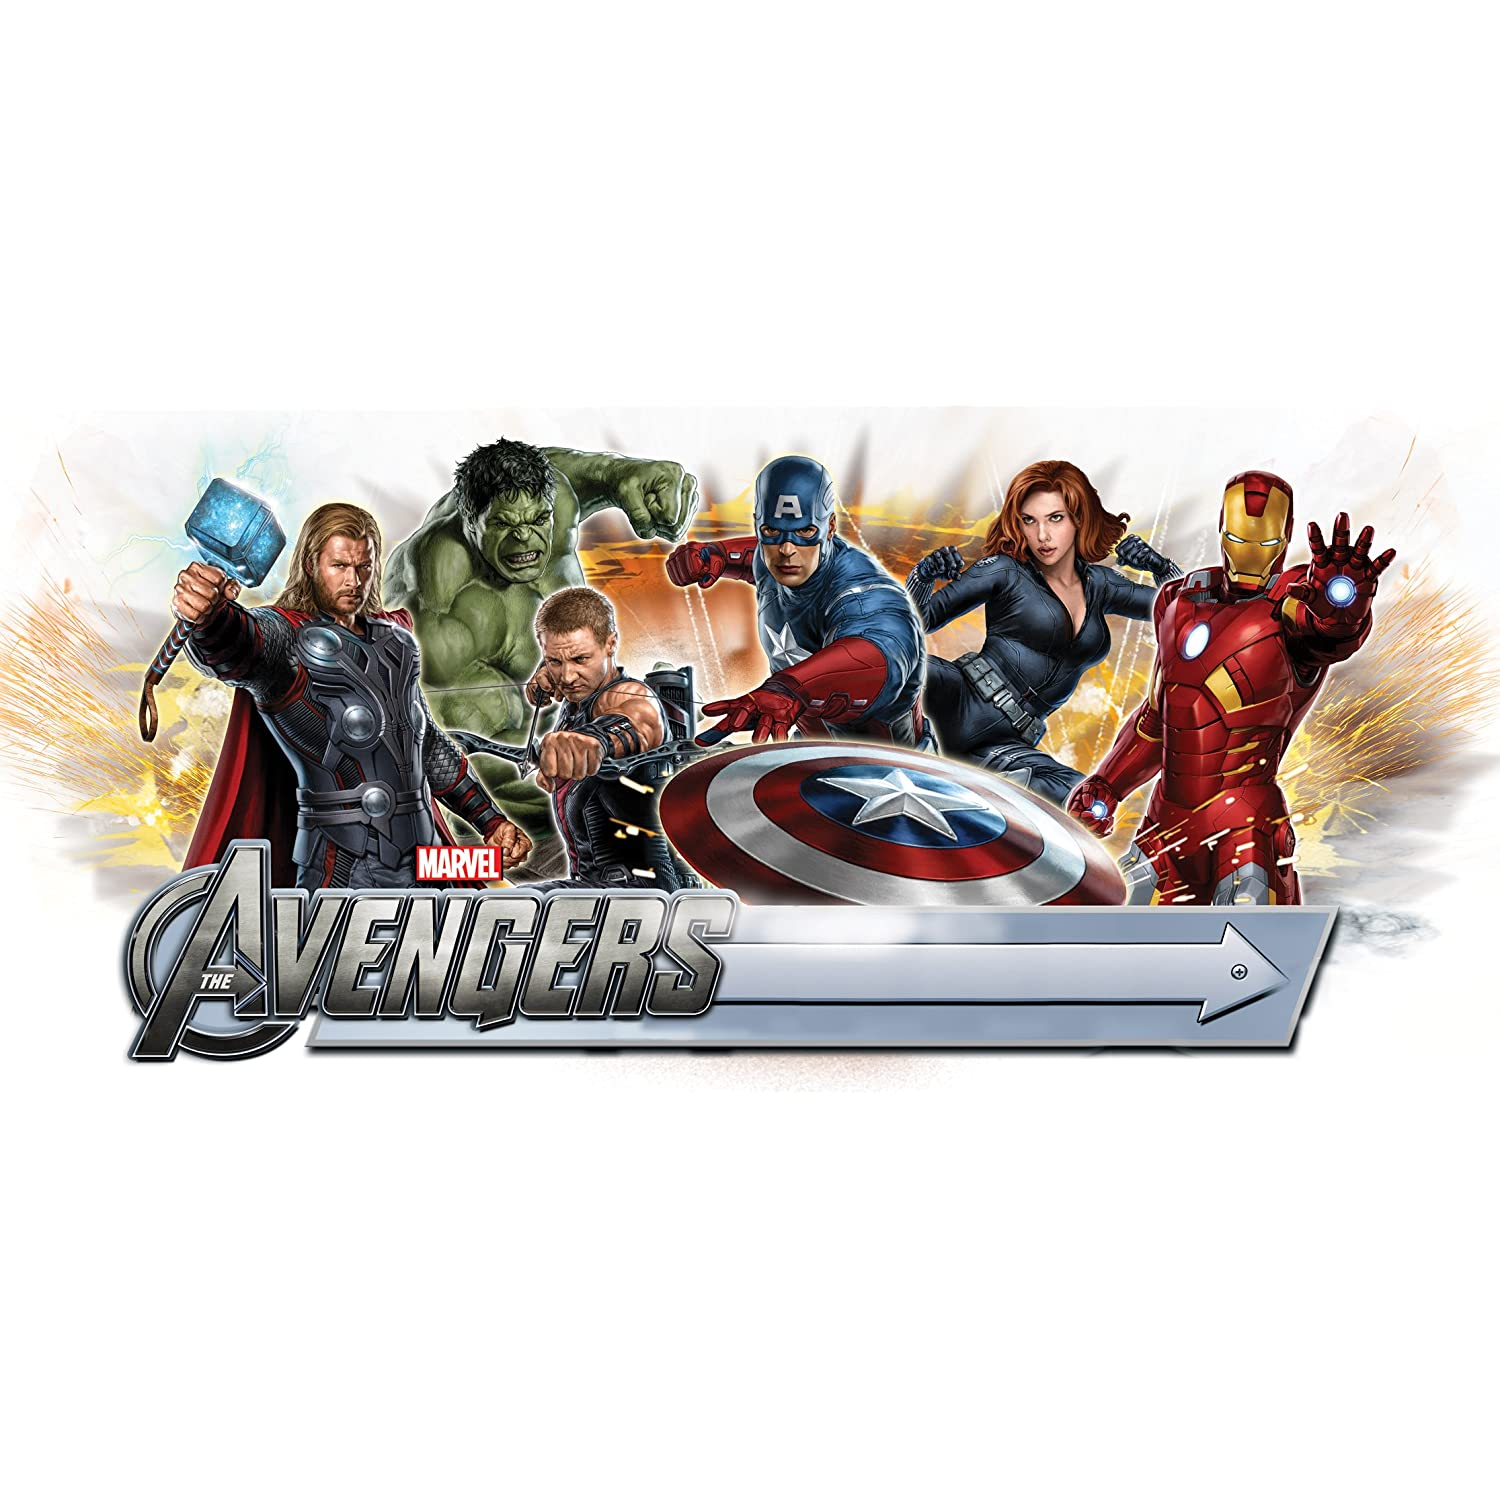 Twin toys for toddlers for Avengers wall mural amazon